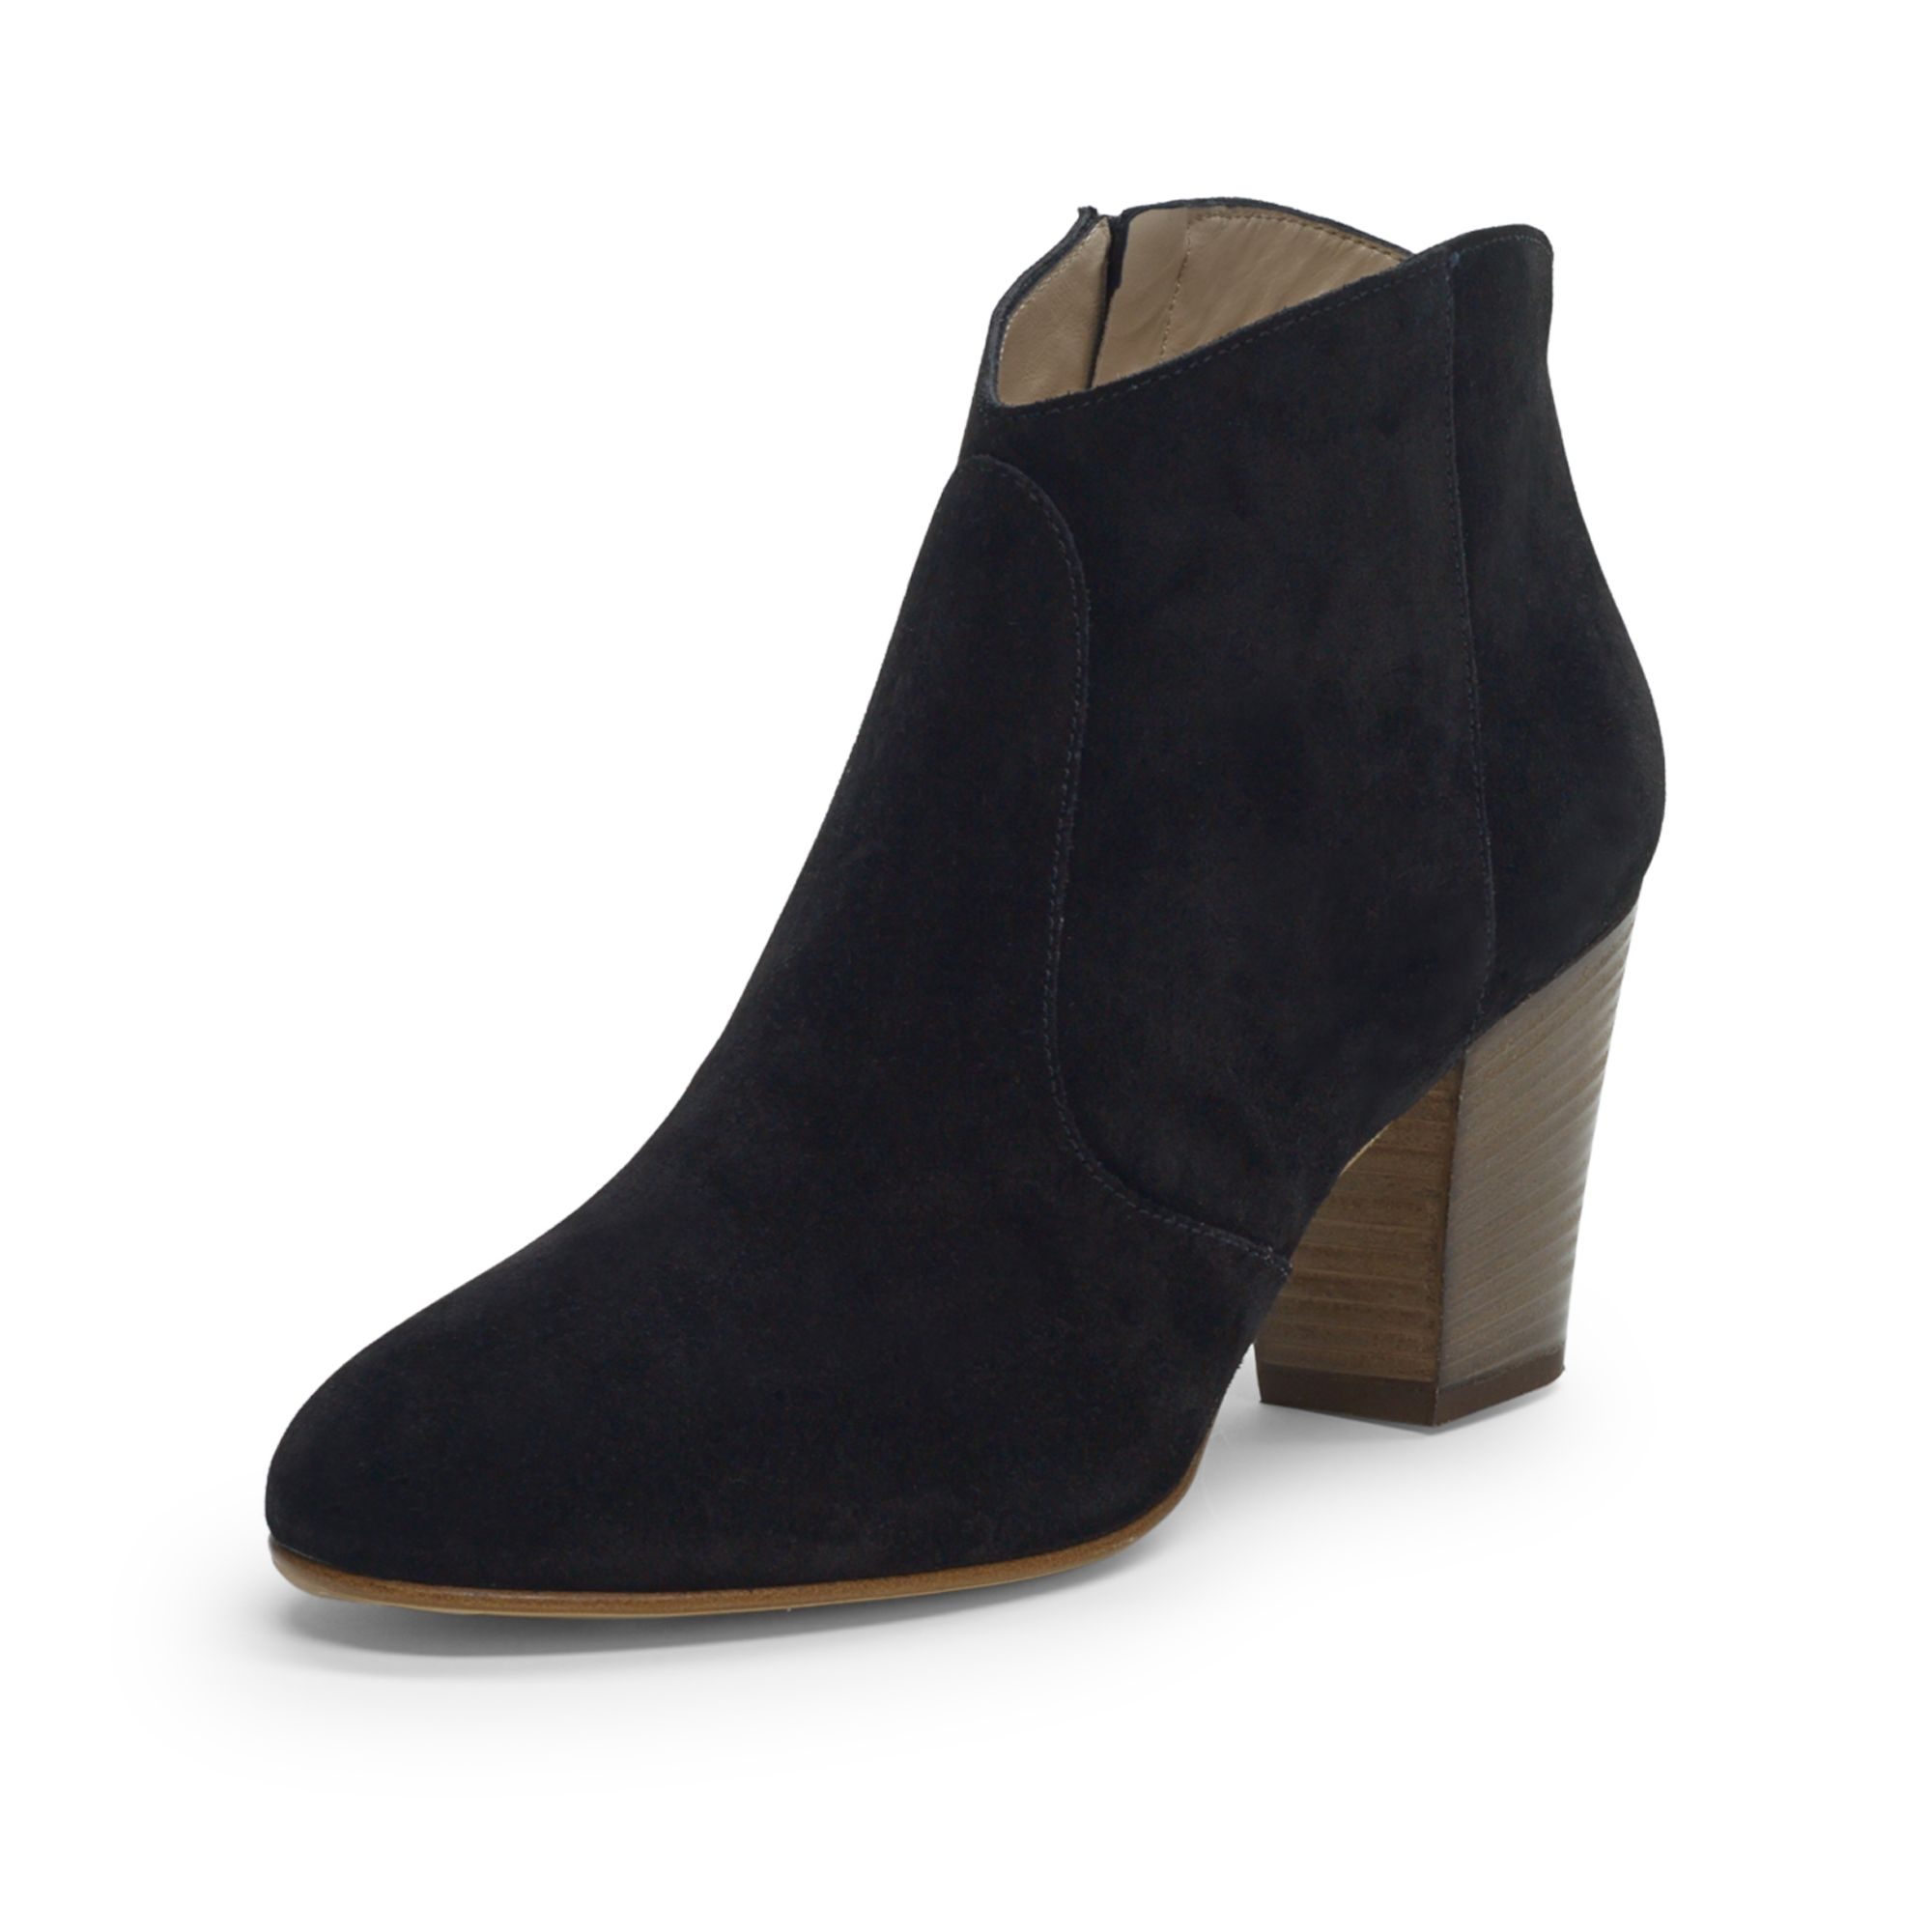 Free shipping BOTH ways on Boots, Women, Suede, from our vast selection of styles. Fast delivery, and 24/7/ real-person service with a smile. Click or call